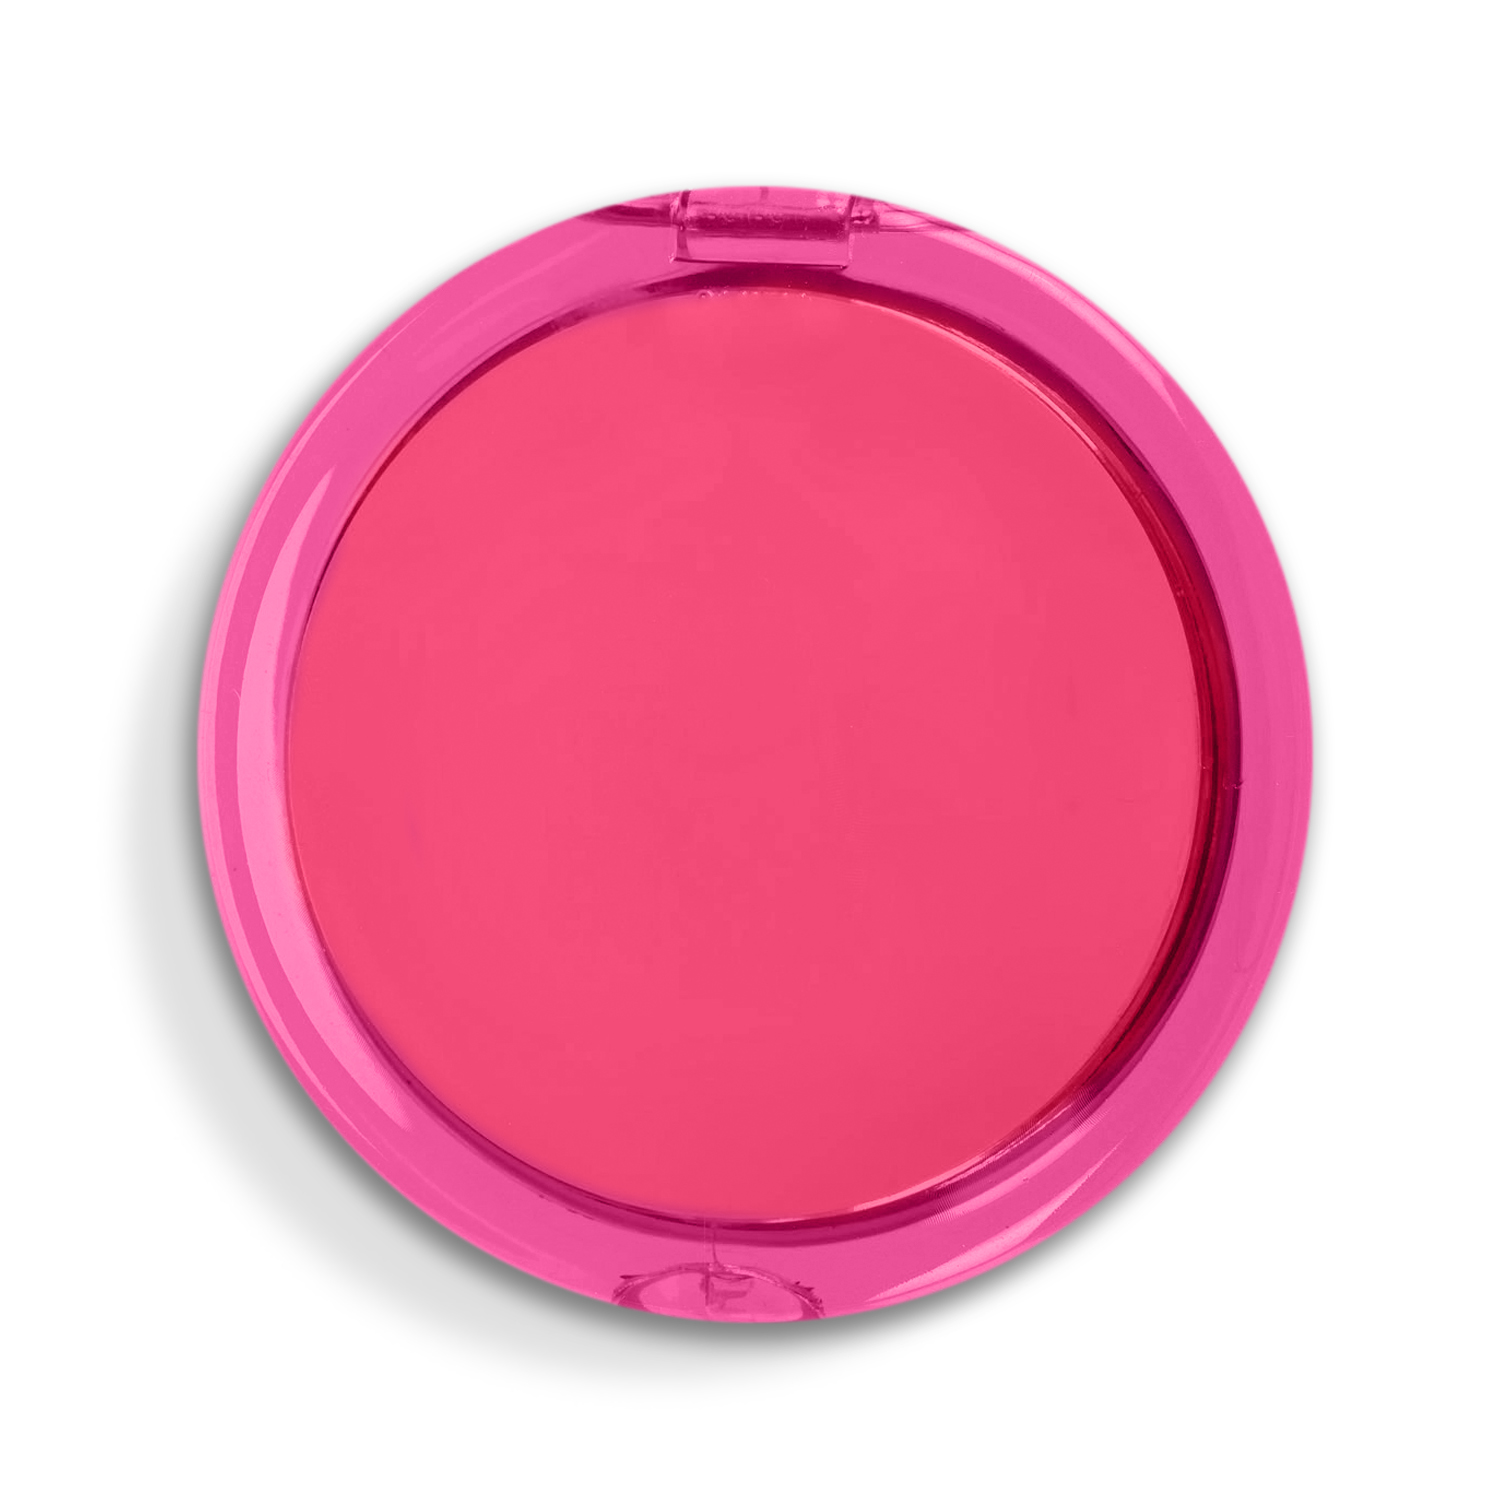 Dual Magnification Folding Mirror-Round